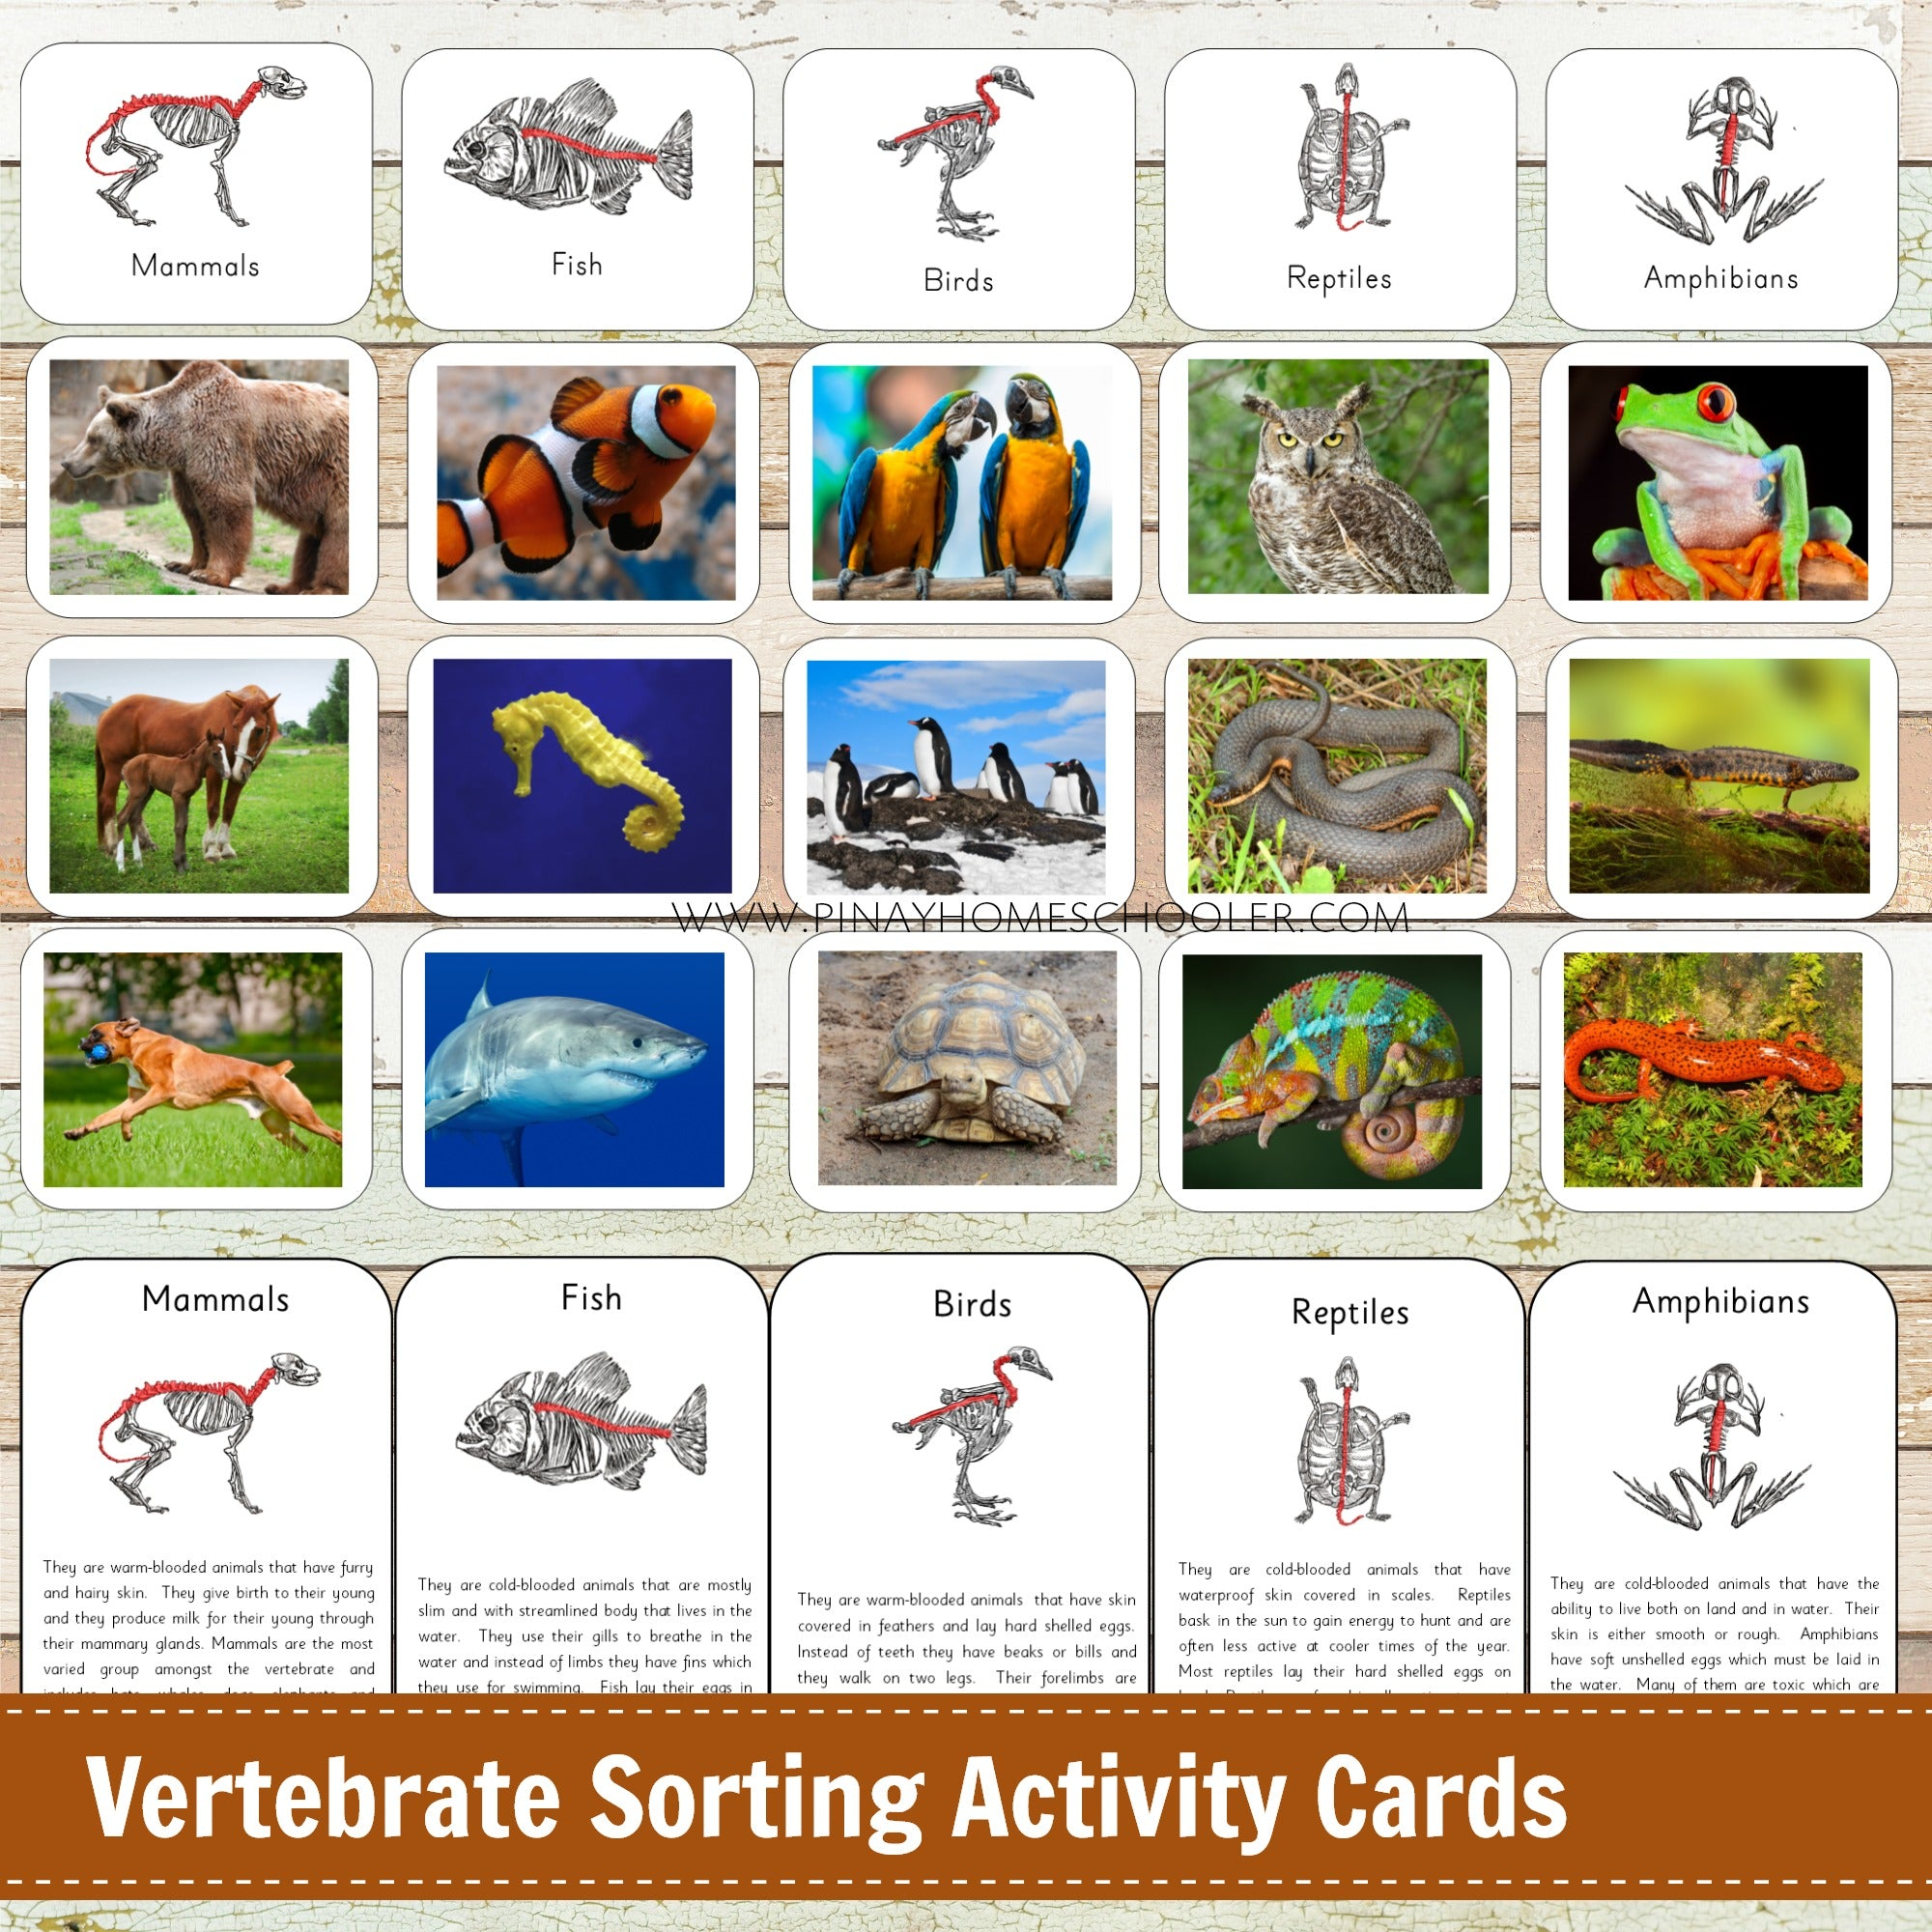 Montessori Vertebrate Sorting Activity Cards